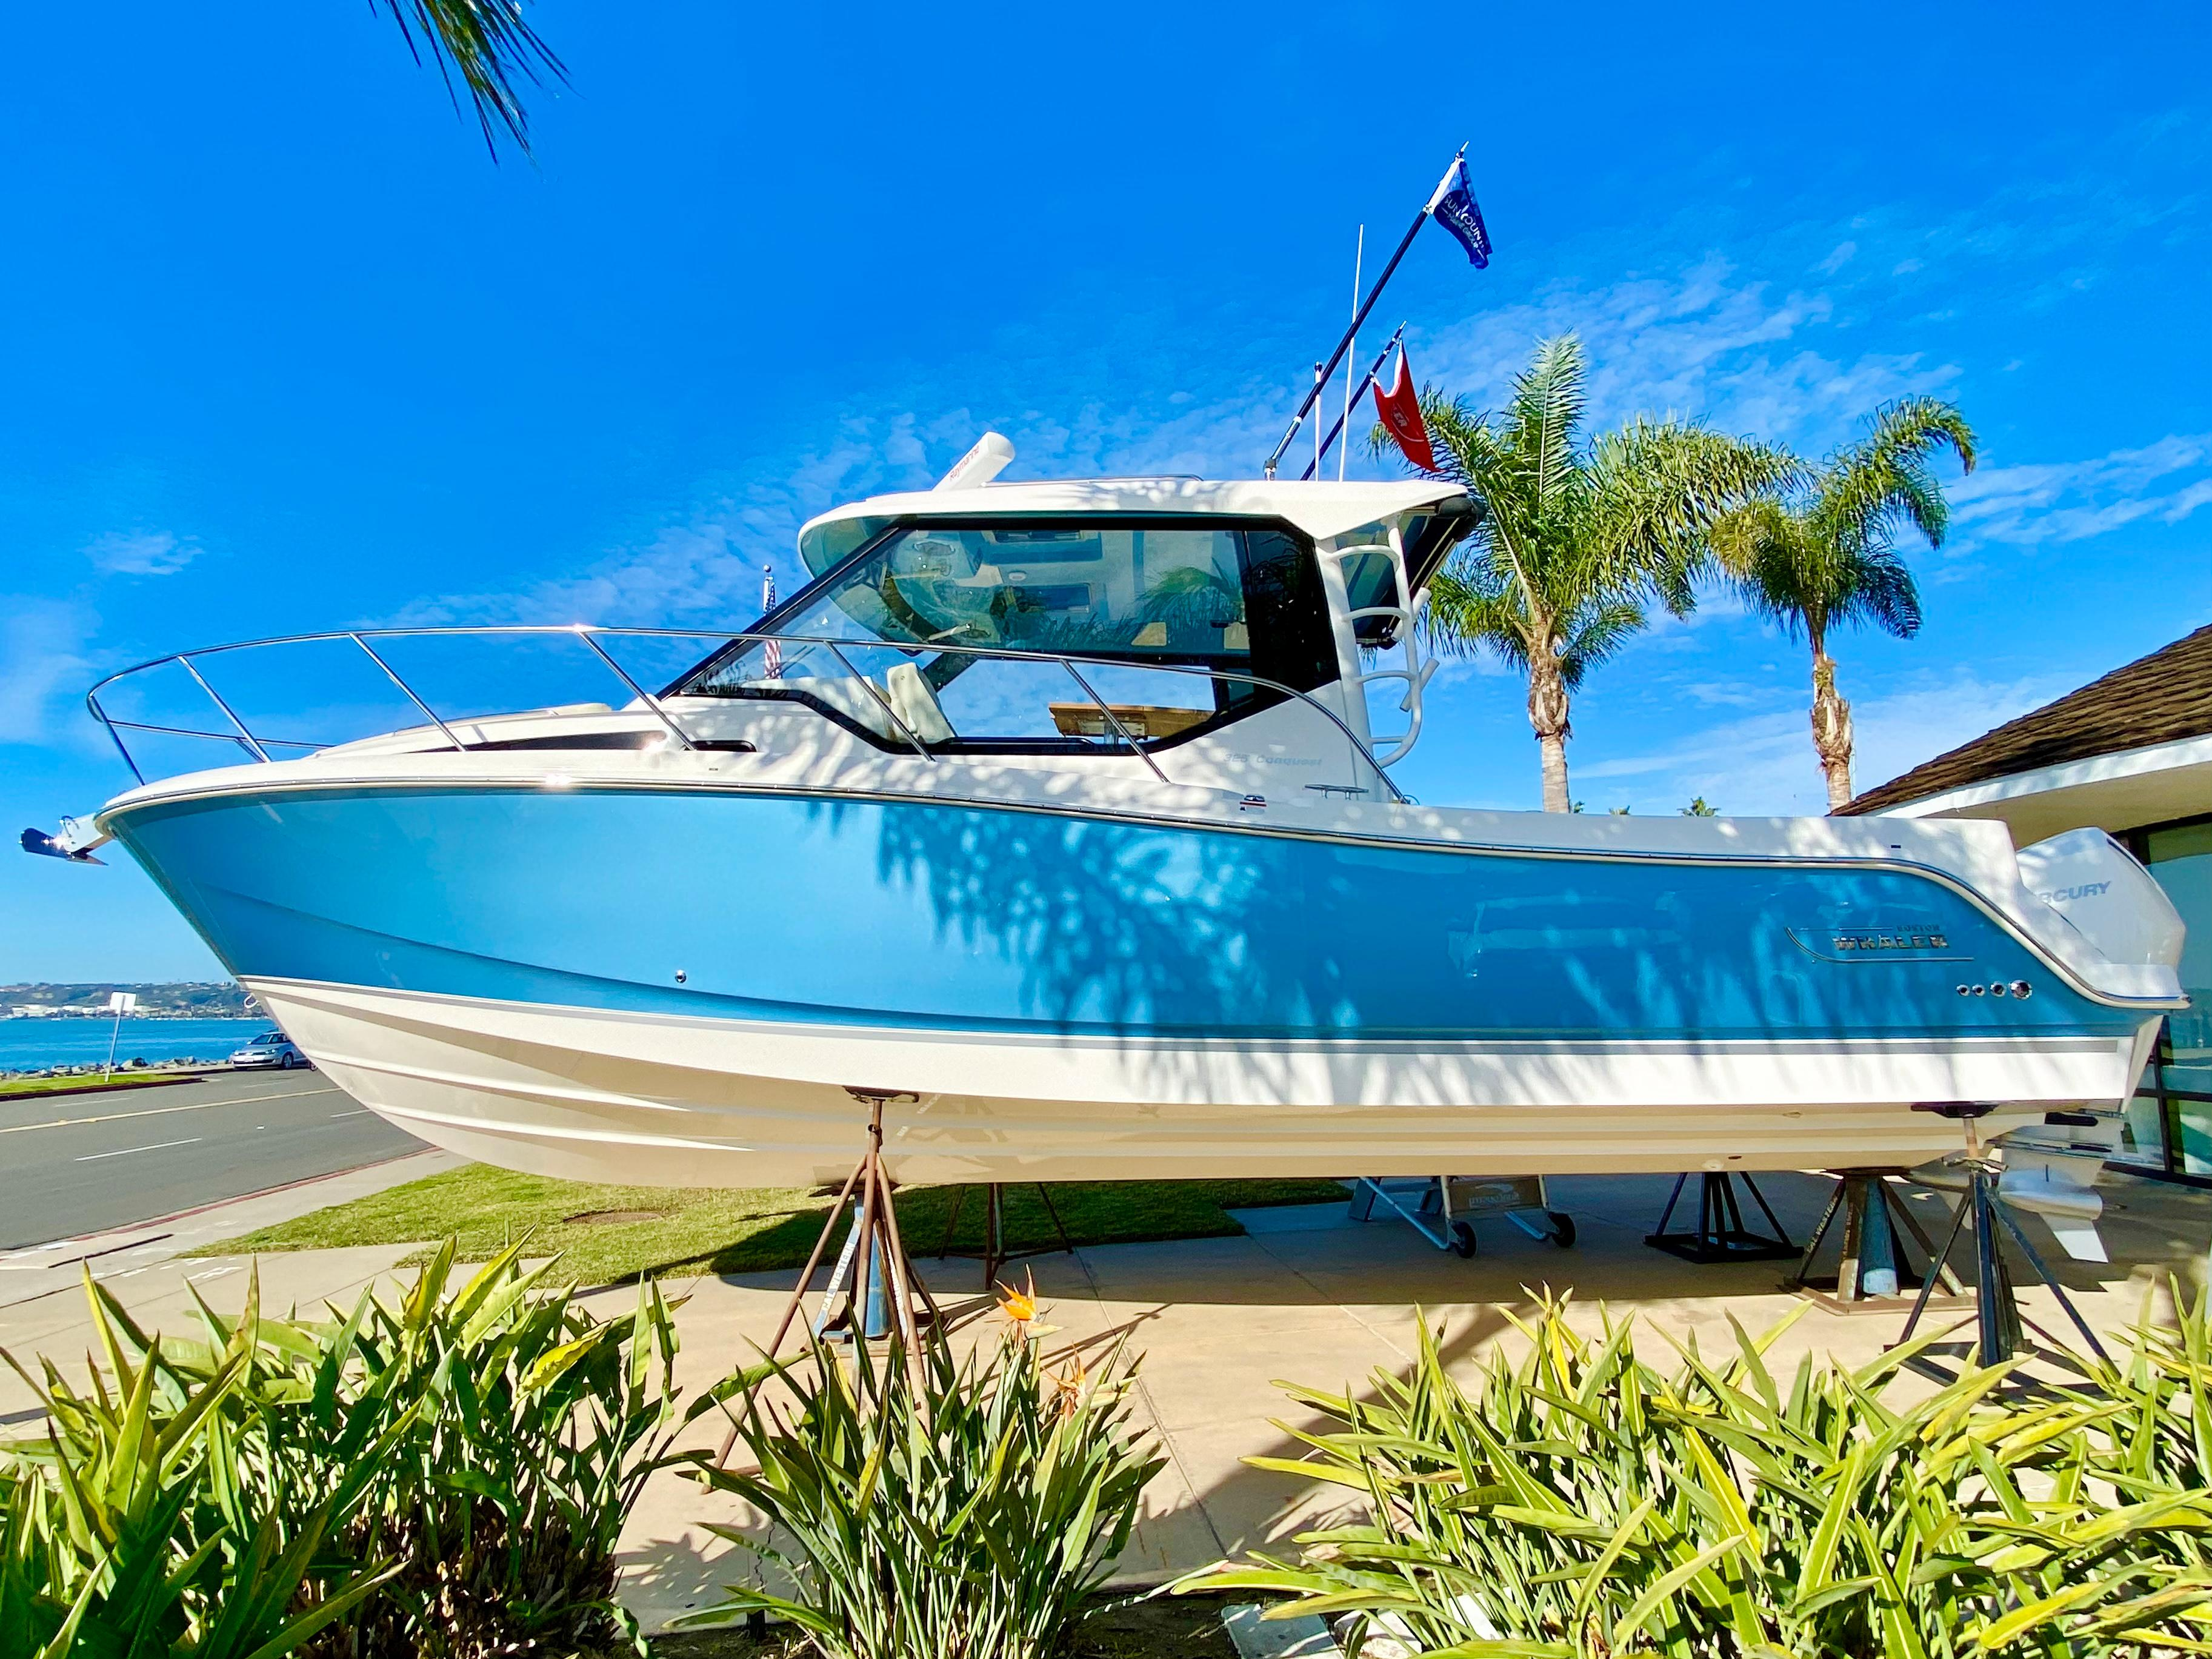 2021 Boston Whaler 325 Conquest #BW1044J inventory image at Sun Country Coastal in San Diego